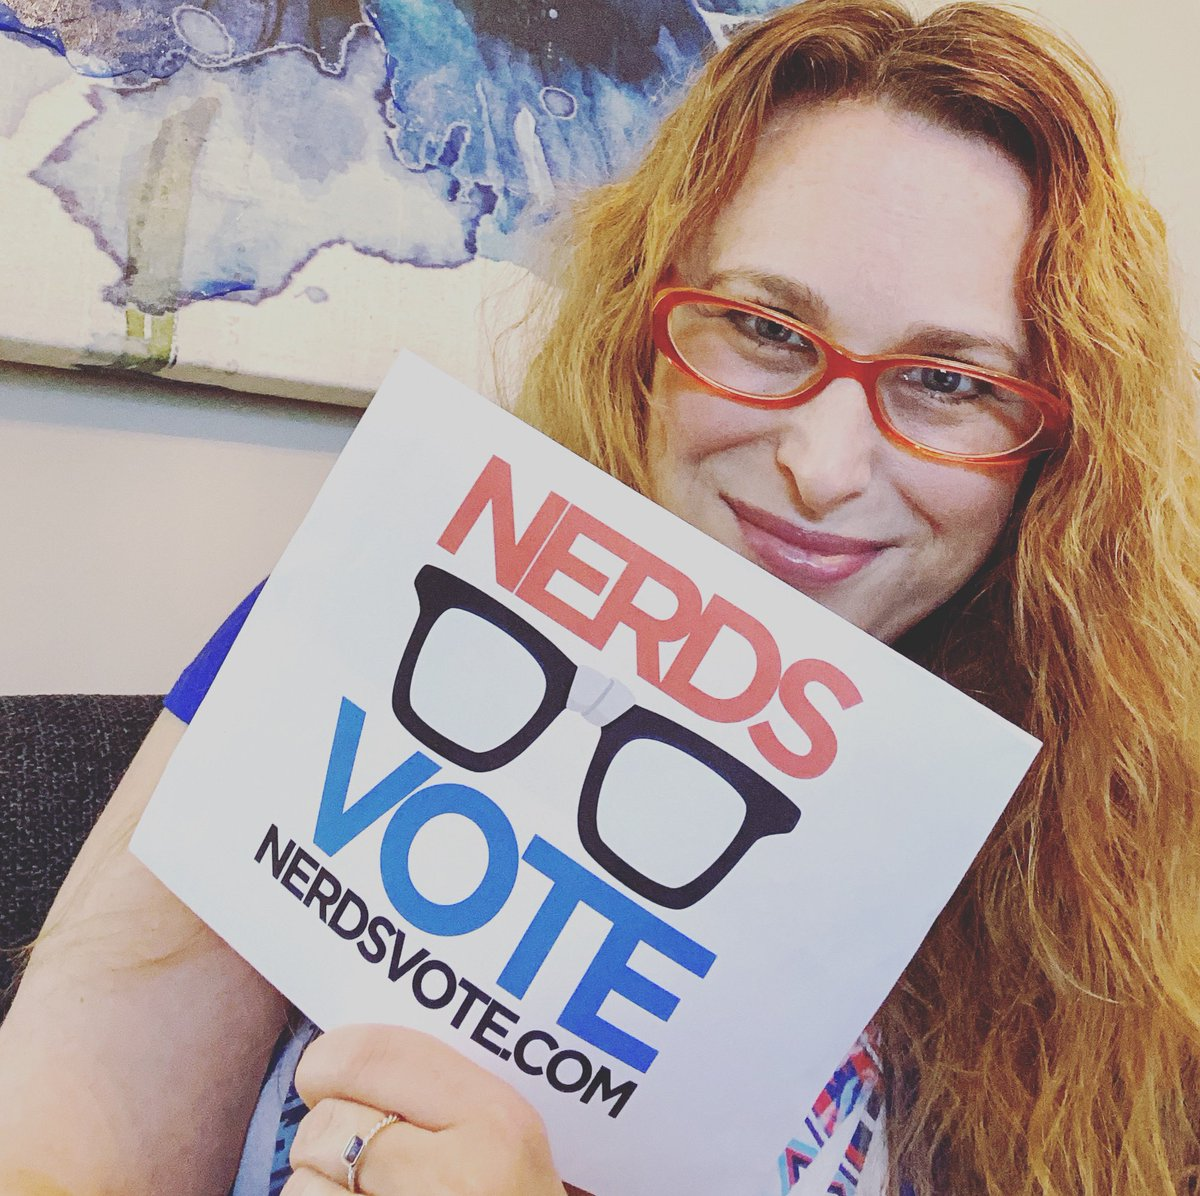 Proud nerd. Proud voter. Happy 4th! @nerdsvote nerdsvote.com Register today! #vote